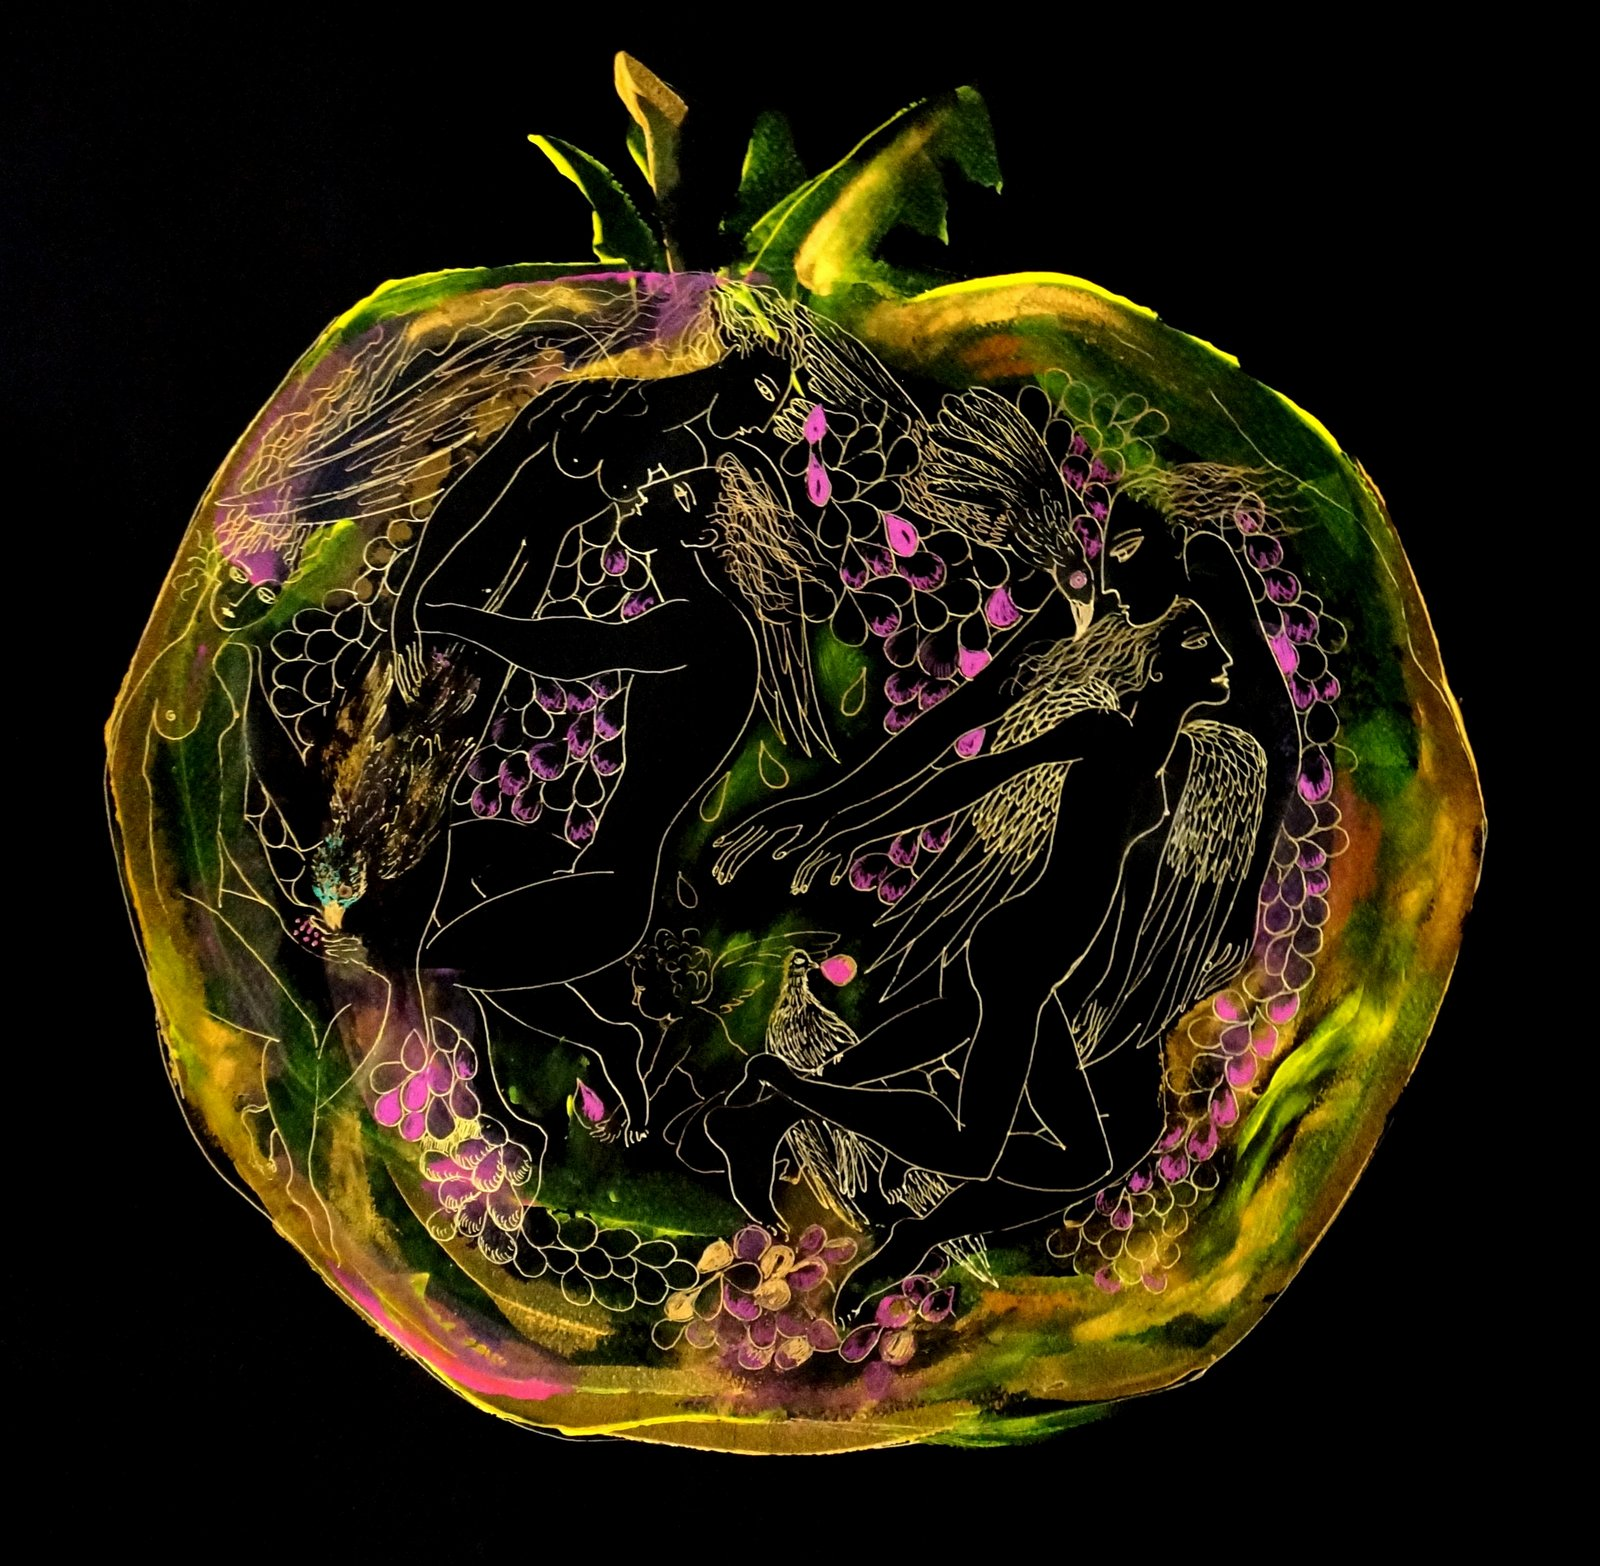 Lezhen-The Apple of Eden-#2.JPG